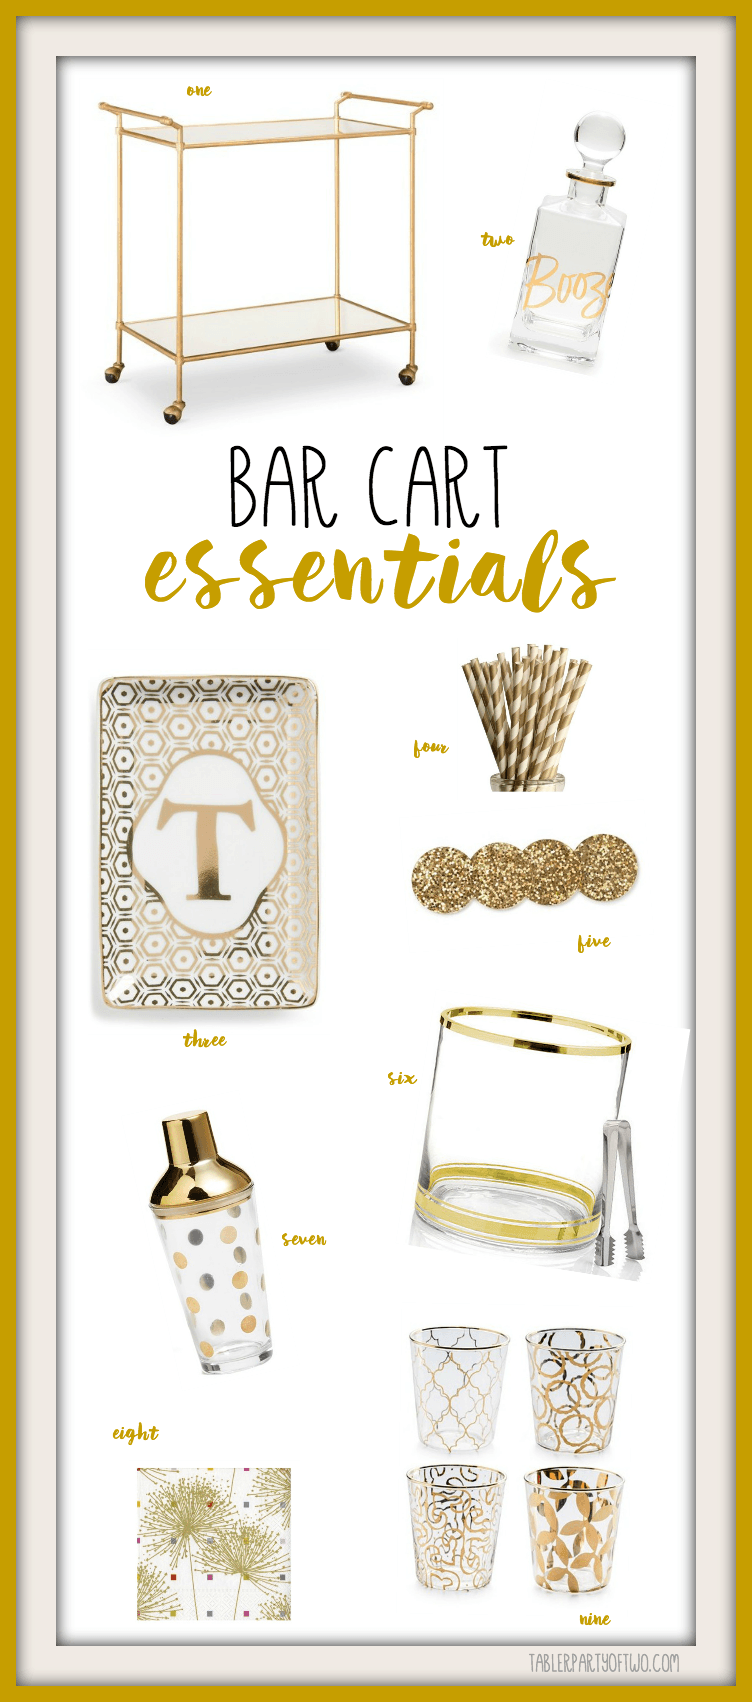 Prepare to the holidays by adding a festive bar cart to your home decor!